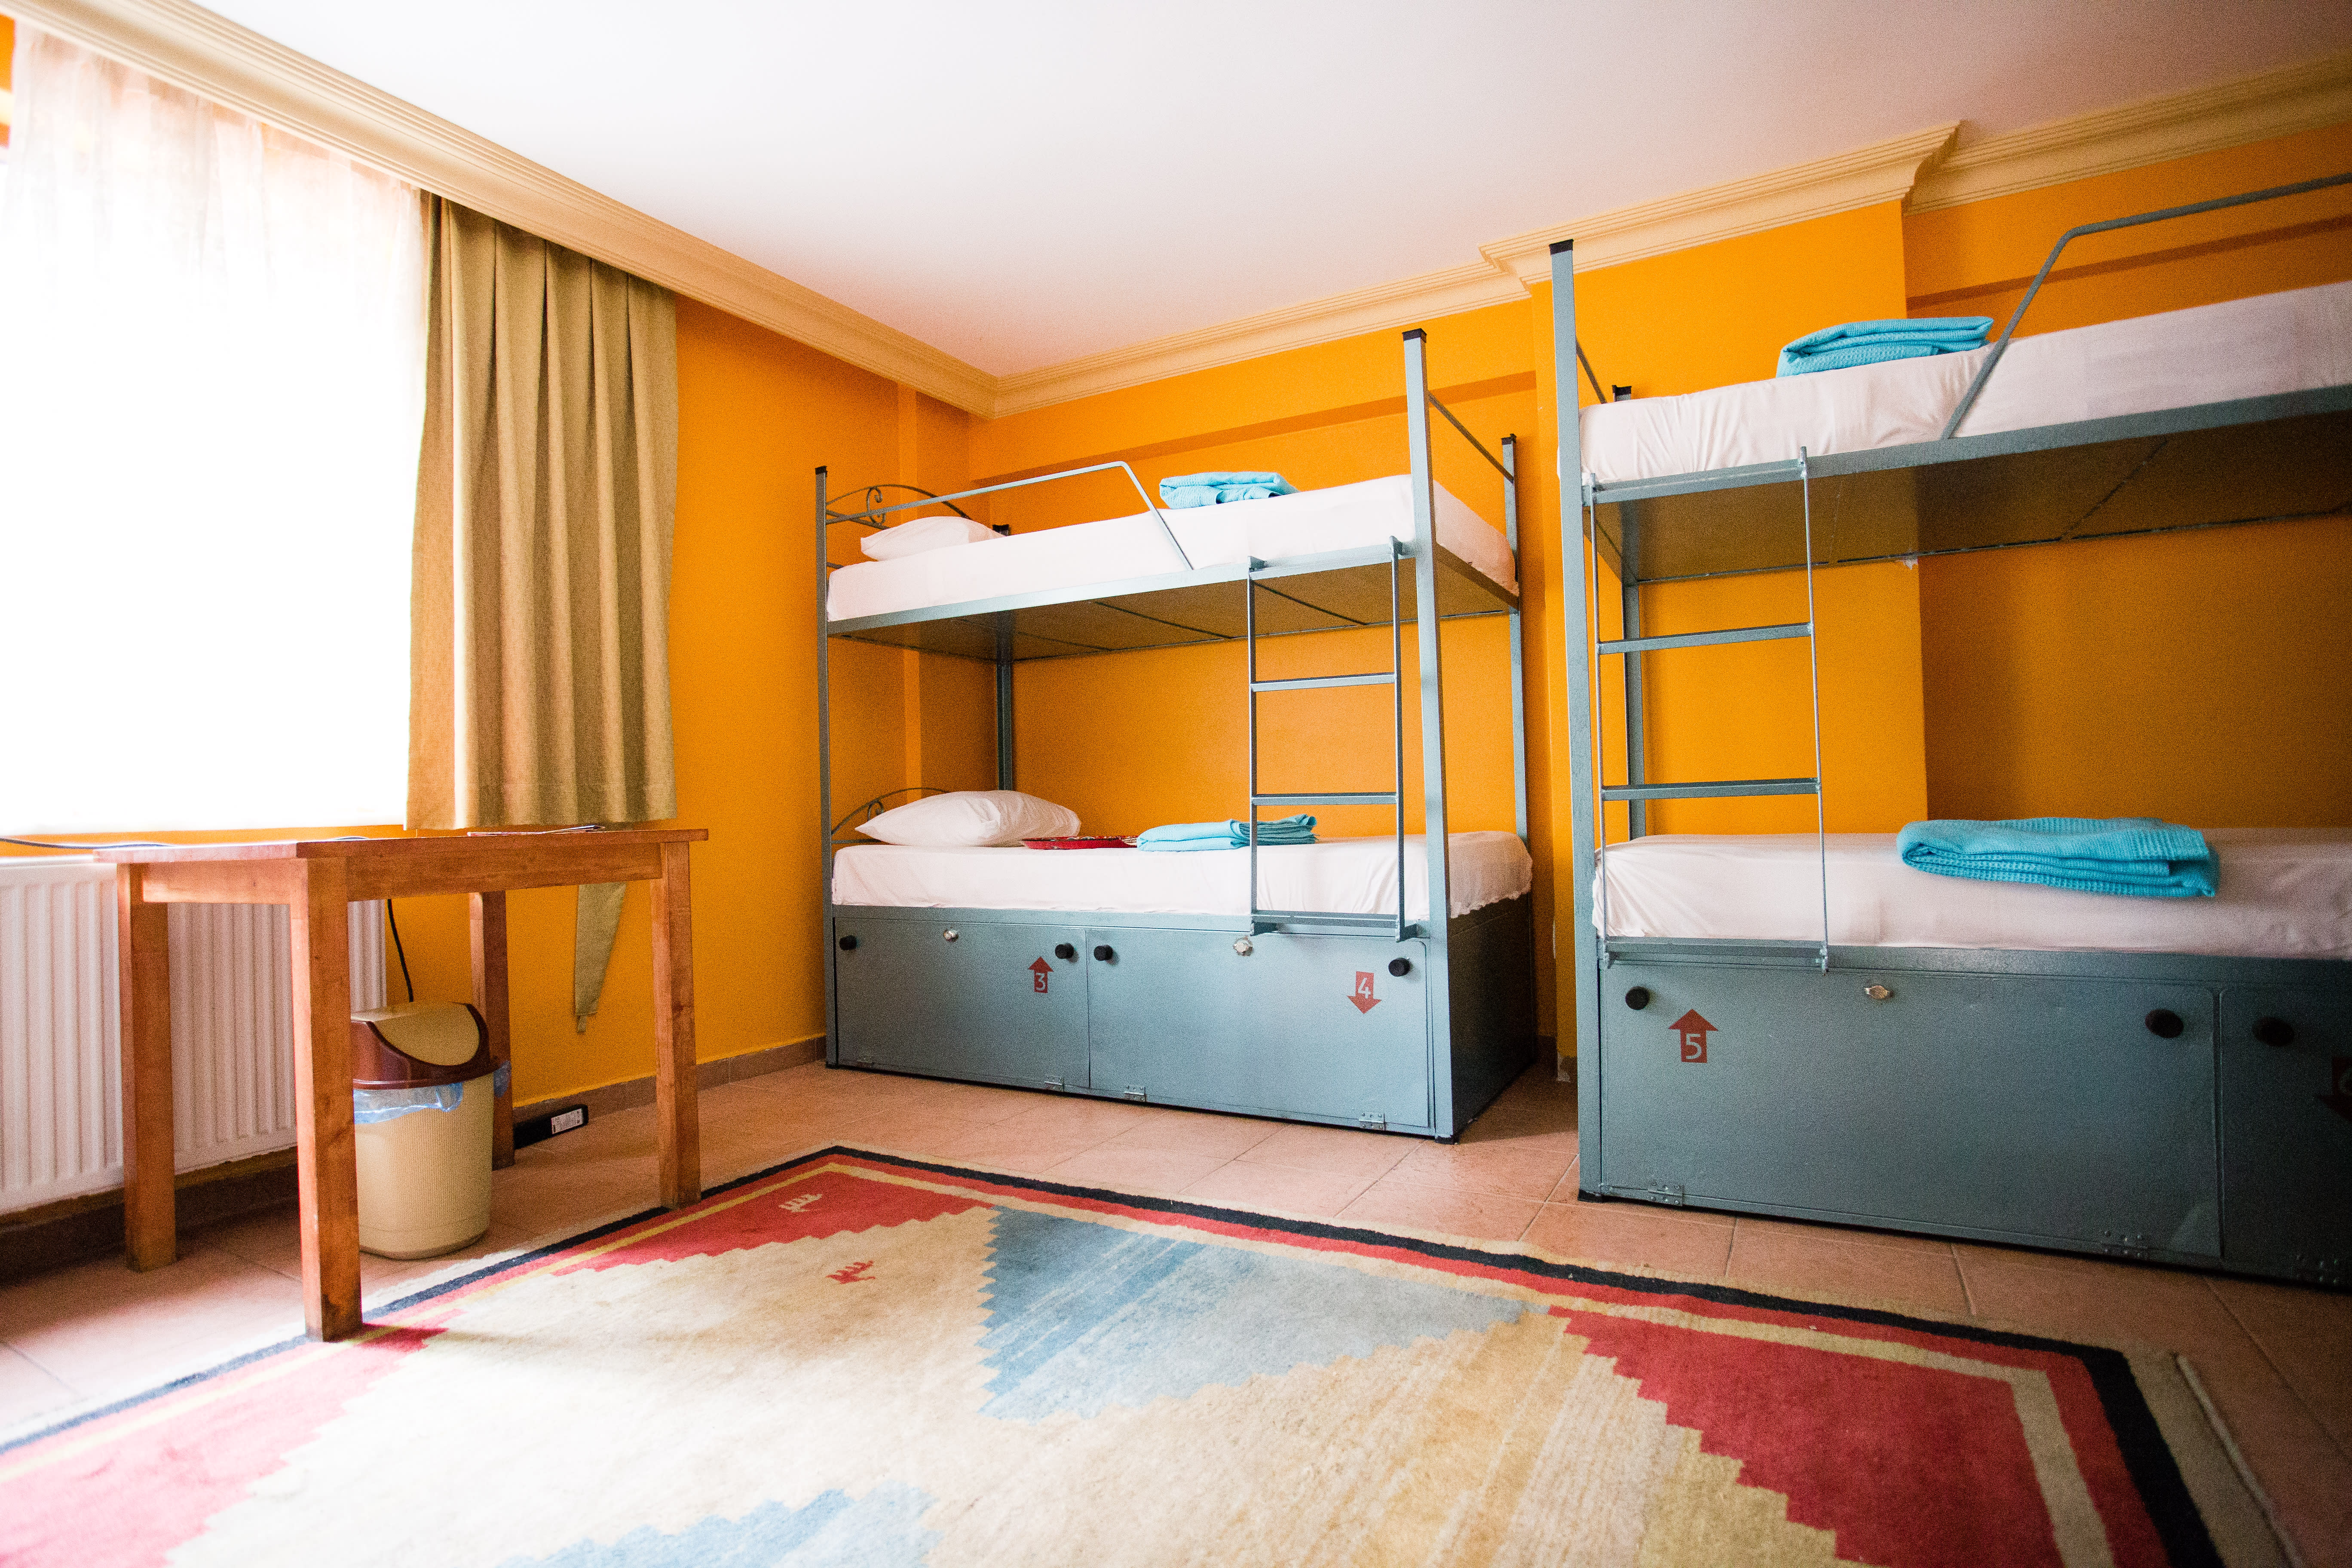 HOSTEL - Agora Hostel and Guesthouse